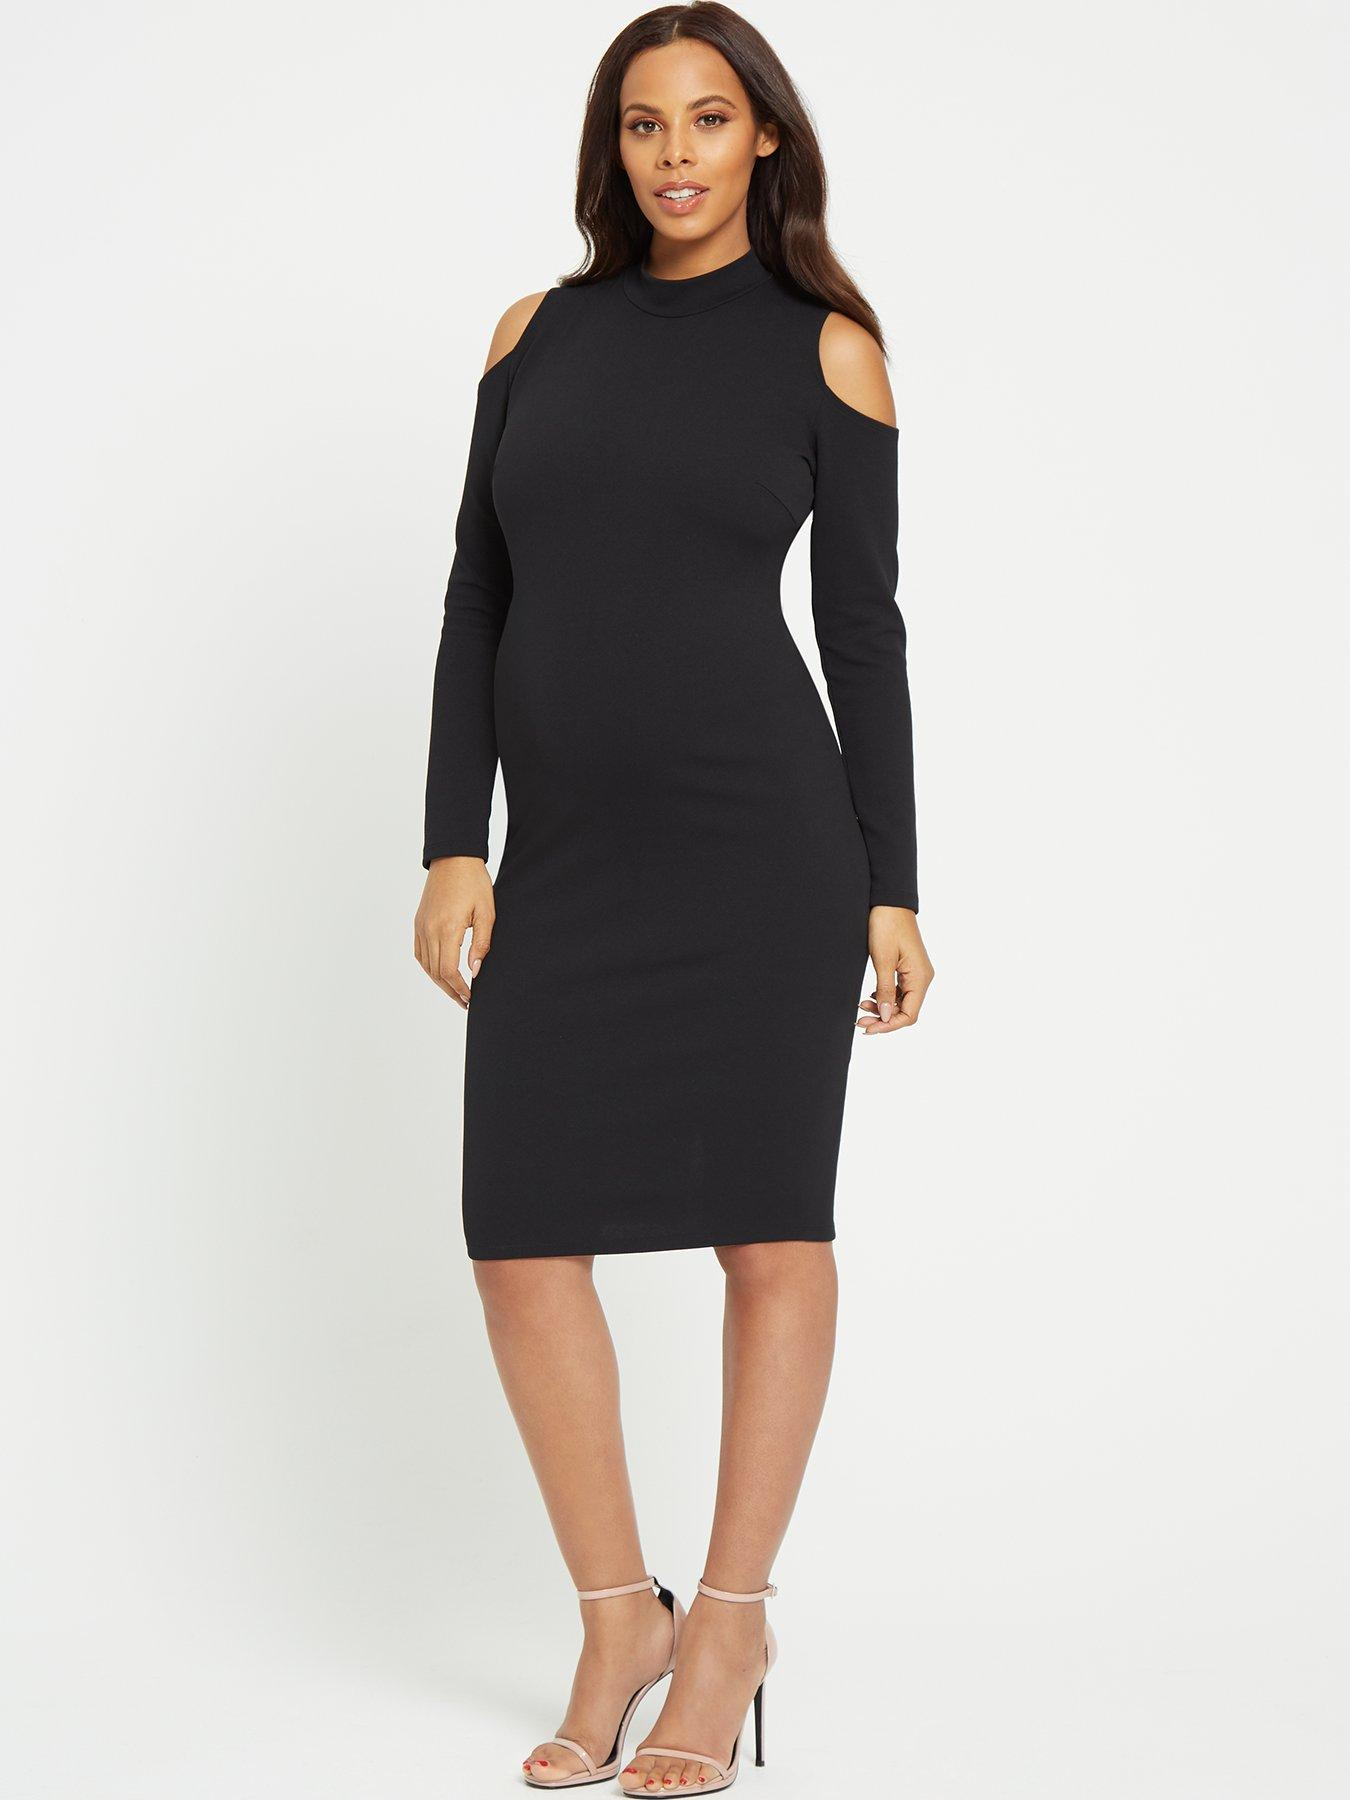 Maternity holiday dresses image collections braidsmaid dress maternity holiday dressesother dressesdressesss maternity holiday dresses ombrellifo image collections ombrellifo Gallery